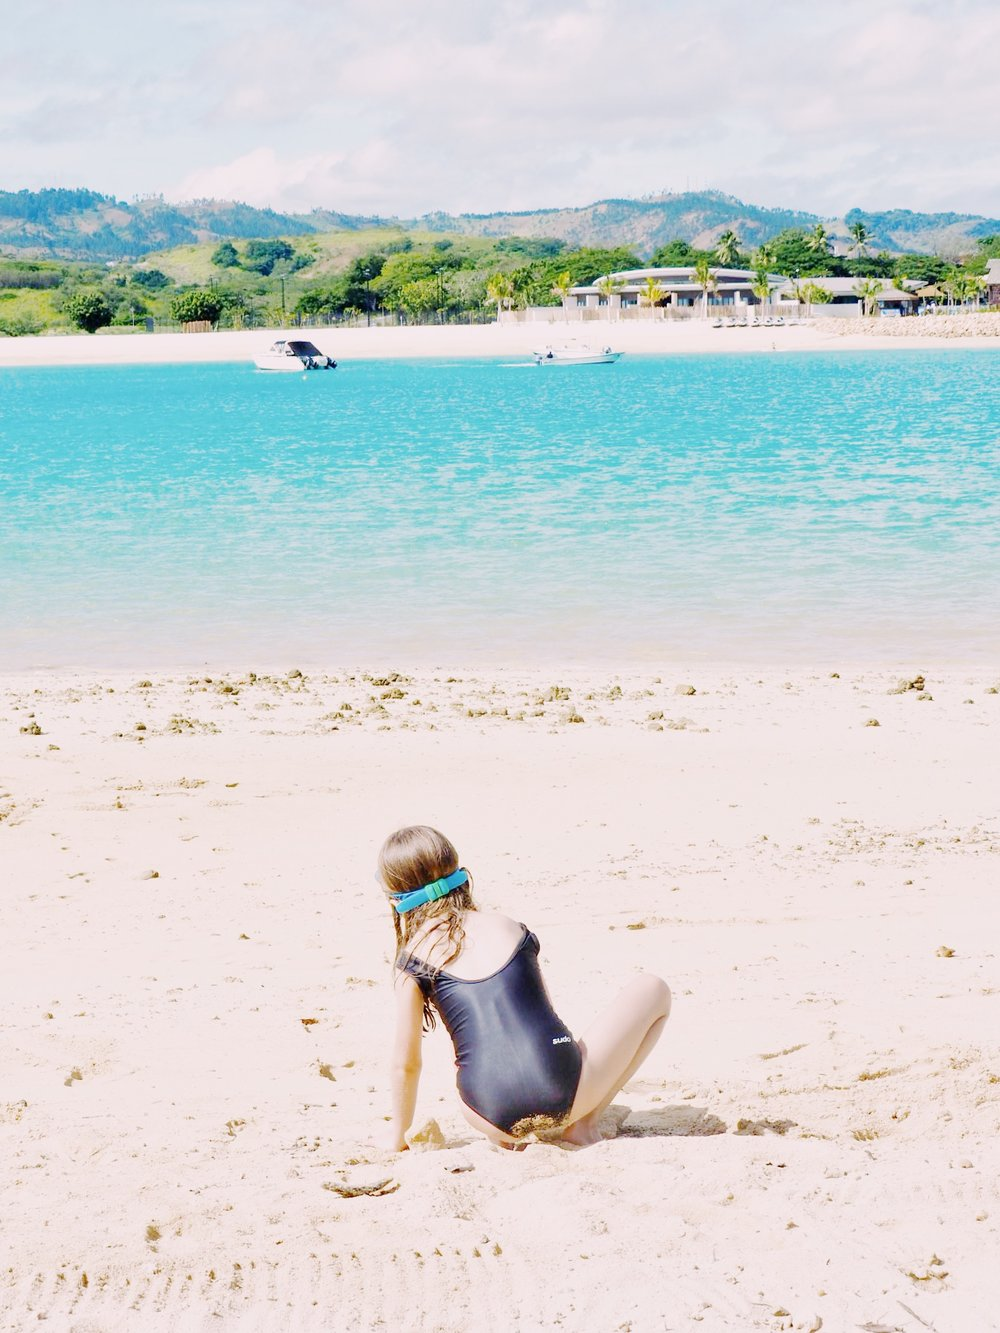 Sandy beaches and calm water, ideal for kids wanting to play in the sand.